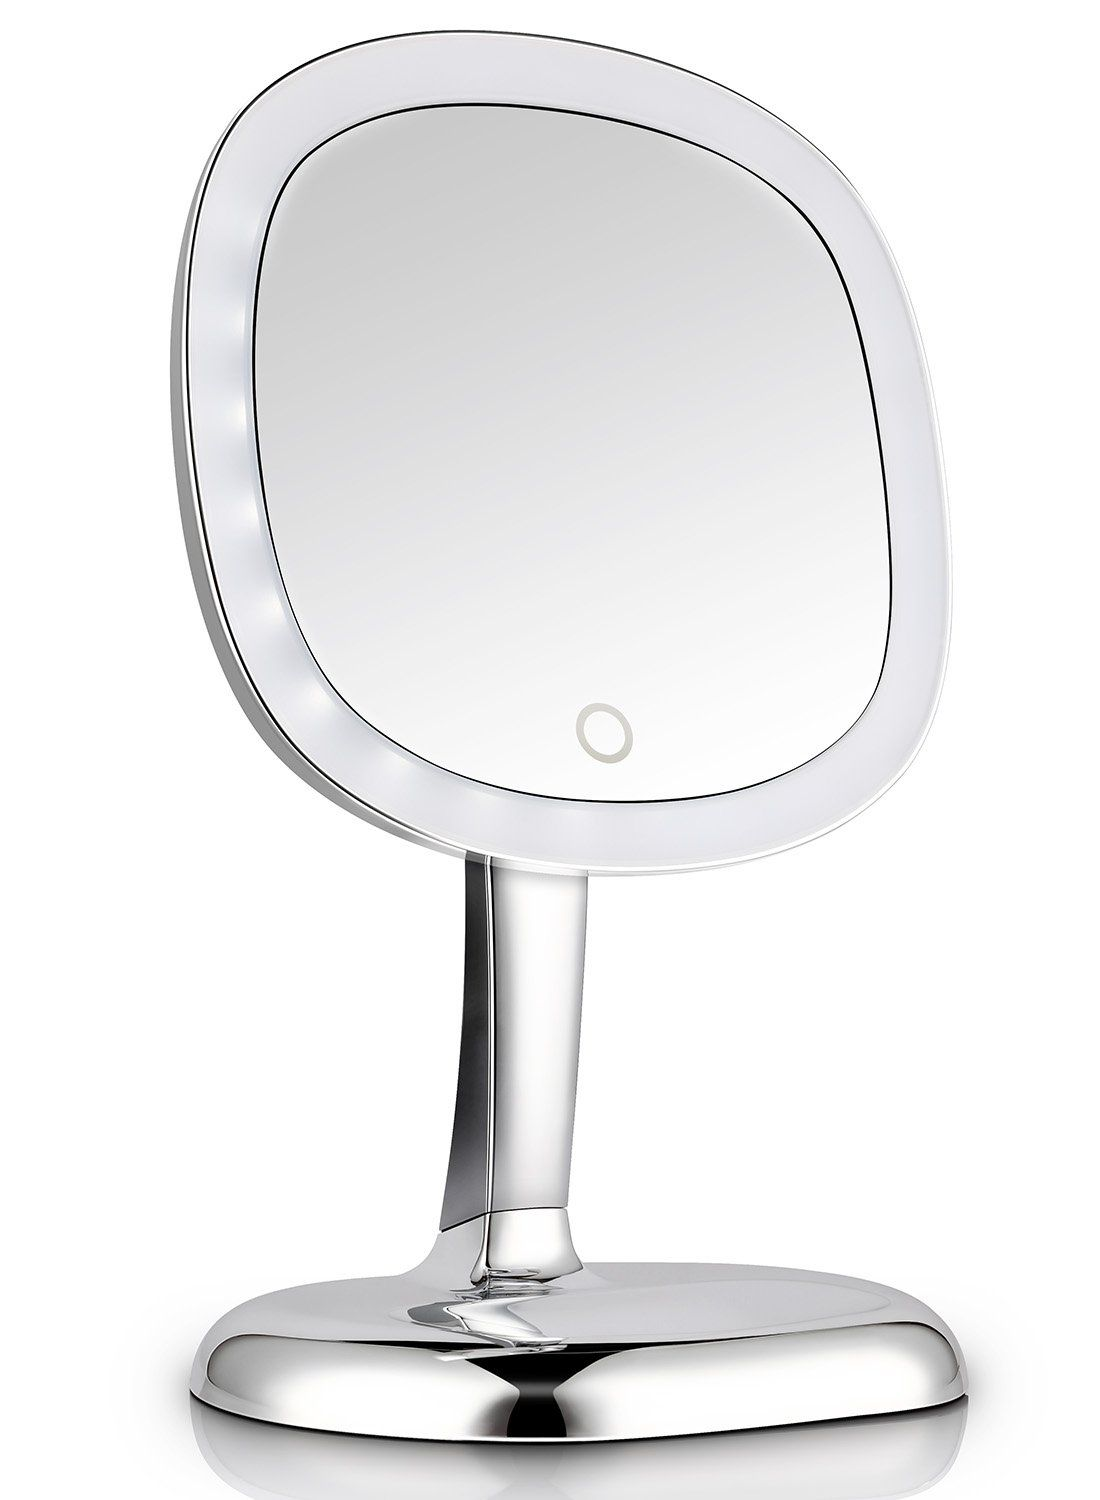 7x Magnifying Lighted Makeup Mirror 9 Inch Cordless Portable